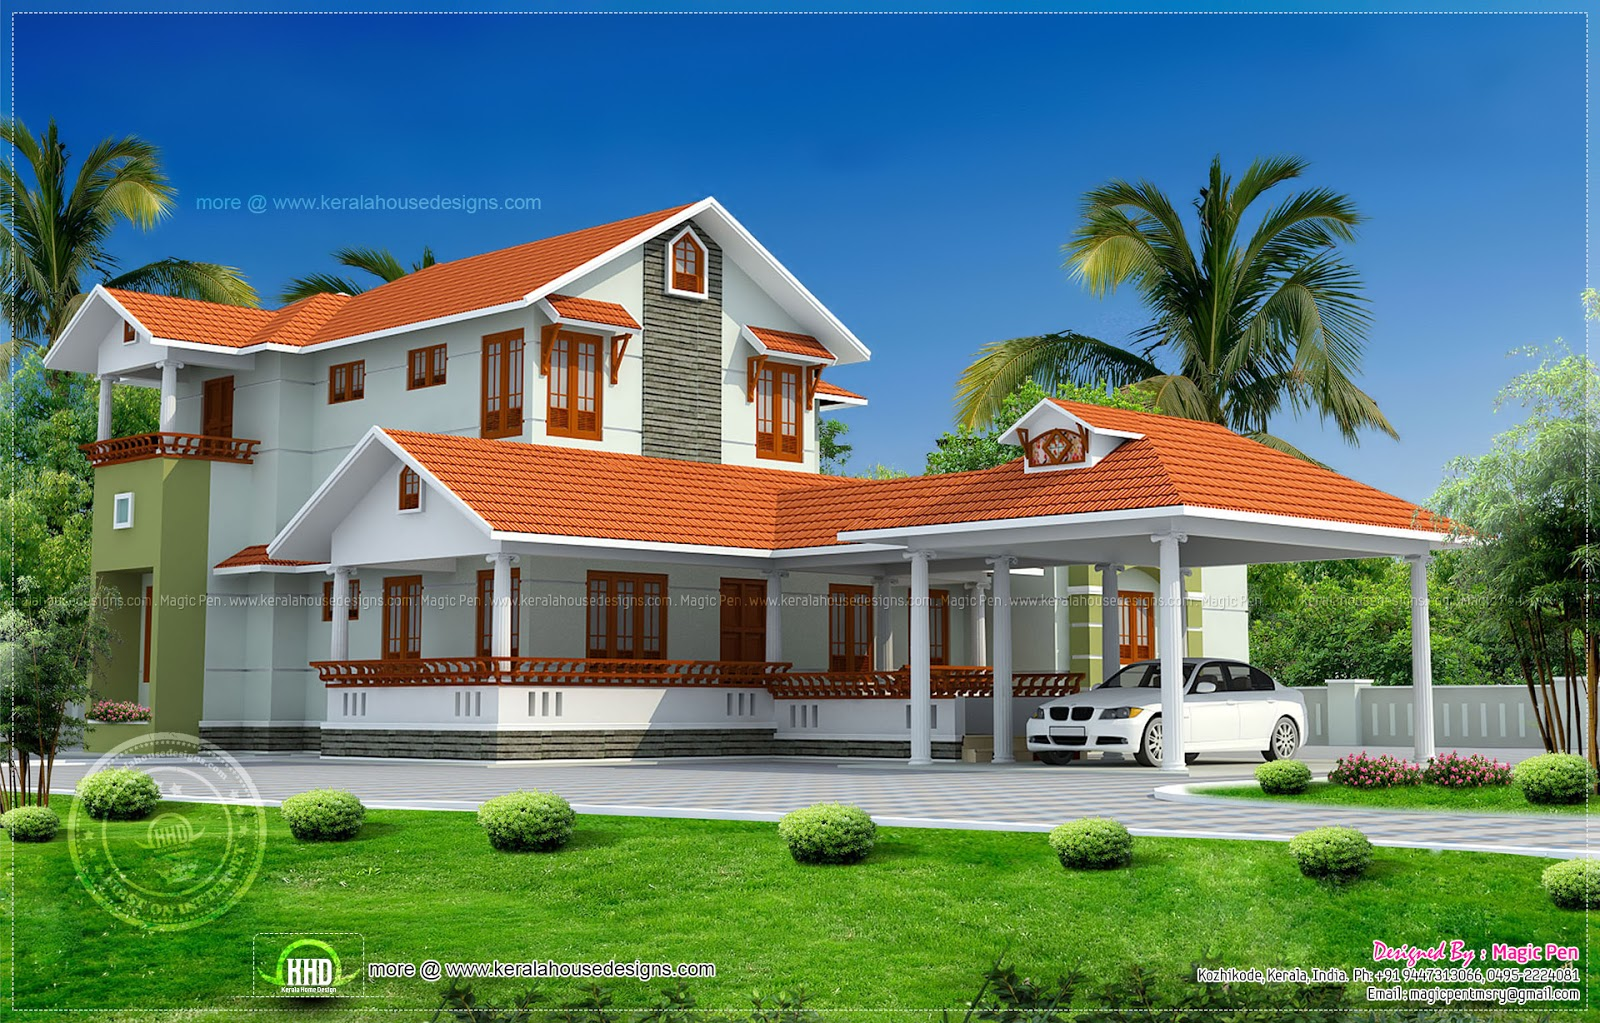 Kerala model double storied house kerala home design and for New model houses in kerala